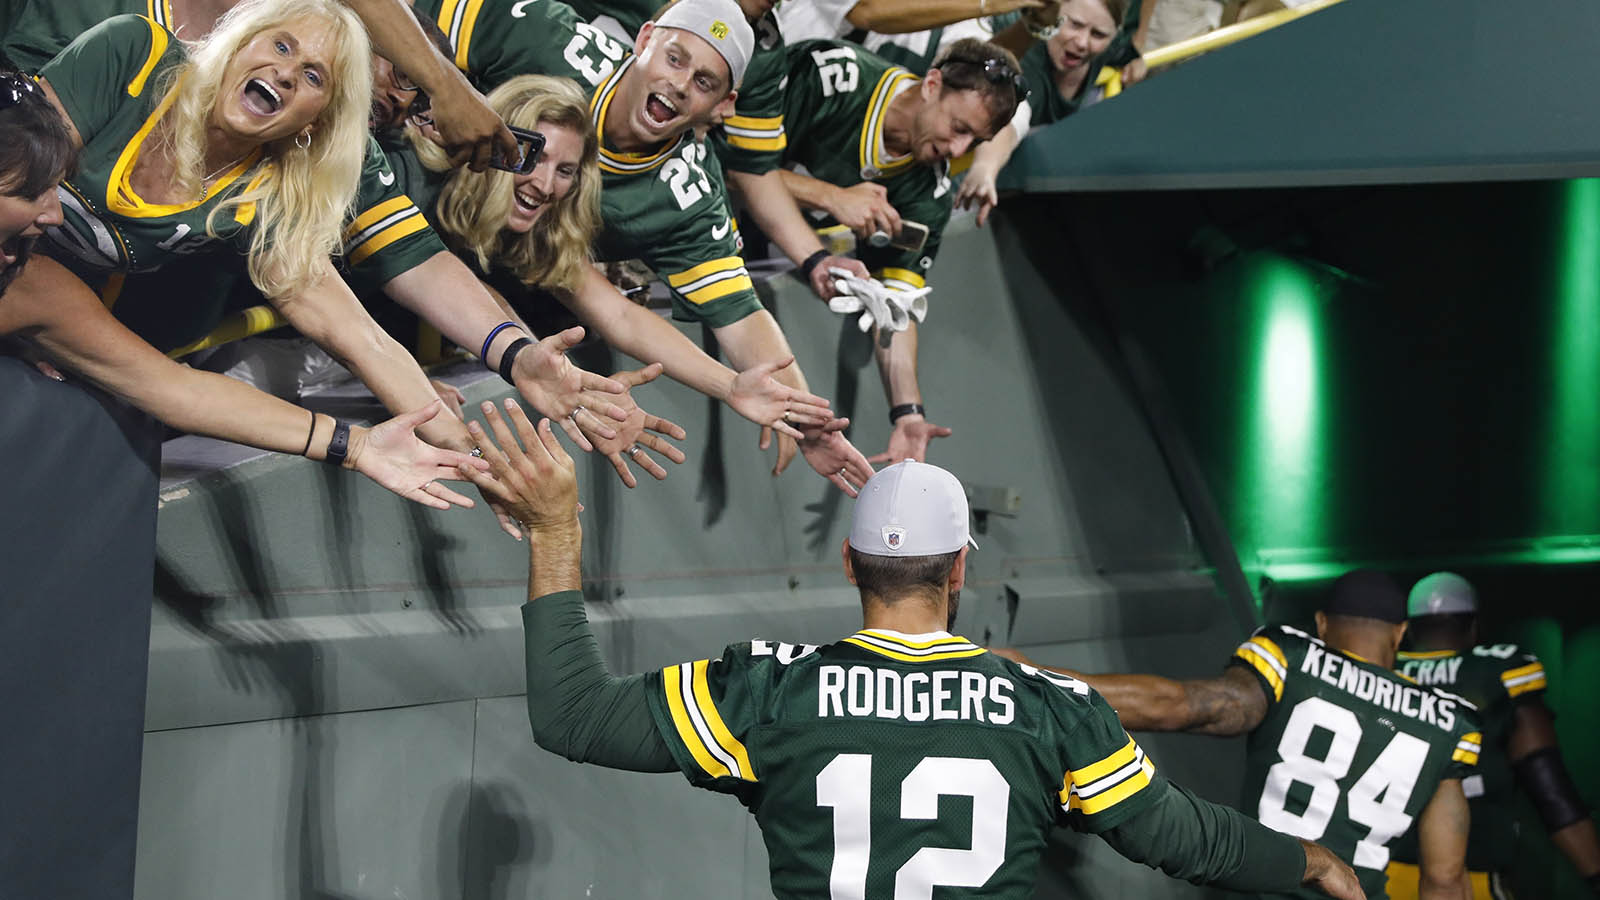 Fan high five Green Bay Packers' Aaron Rodgers after a preseason NFL football game against the Pittsburgh Steelers Thursday, Aug. 16, 2018, in Green Bay, Wis. The Packers won 51-34. (AP Photo/Jeffrey Phelps)